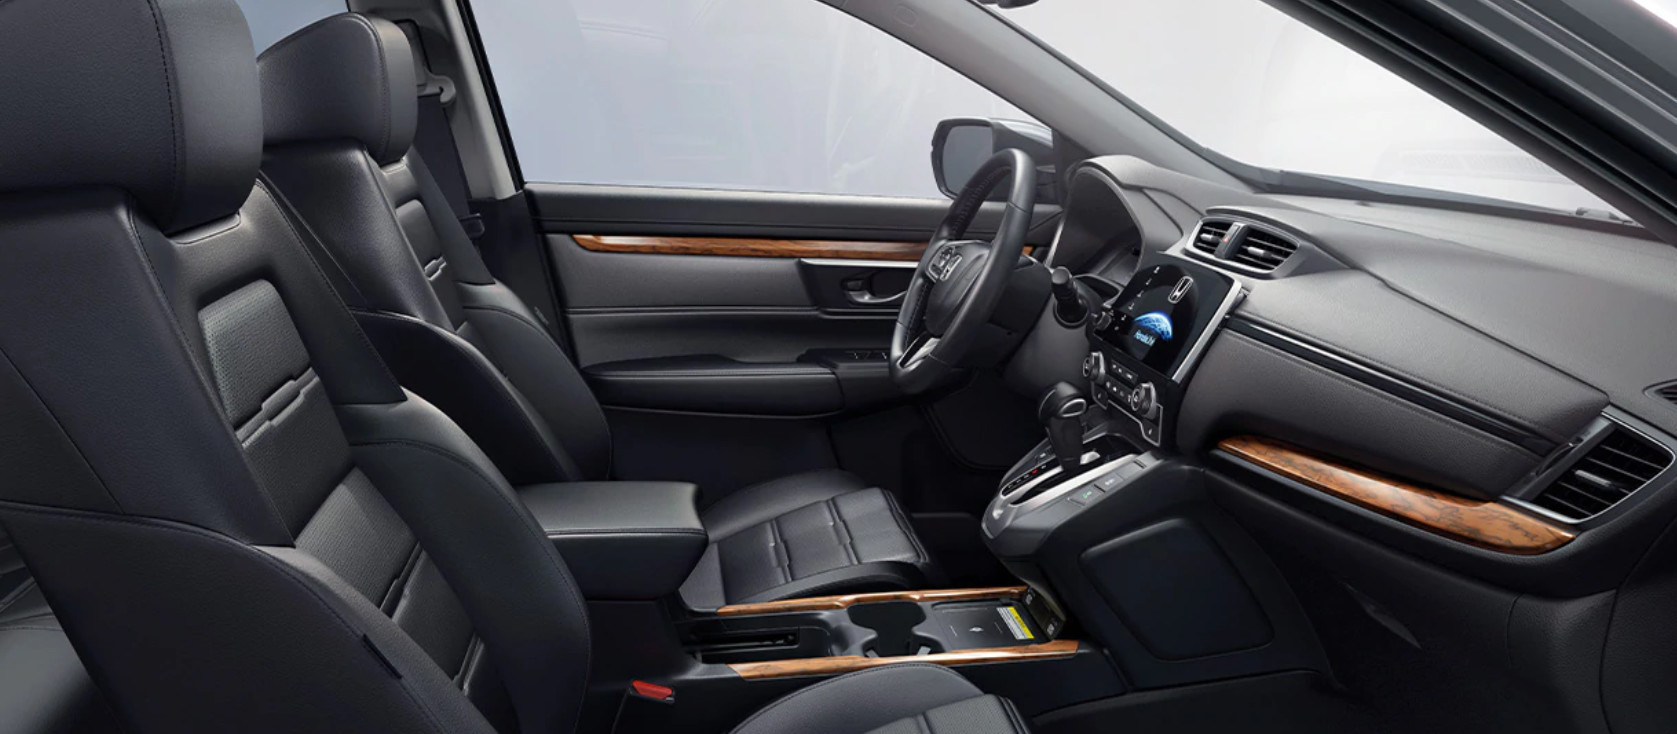 2020 Honda CR-V Available 12-Way Power Driver's Seat